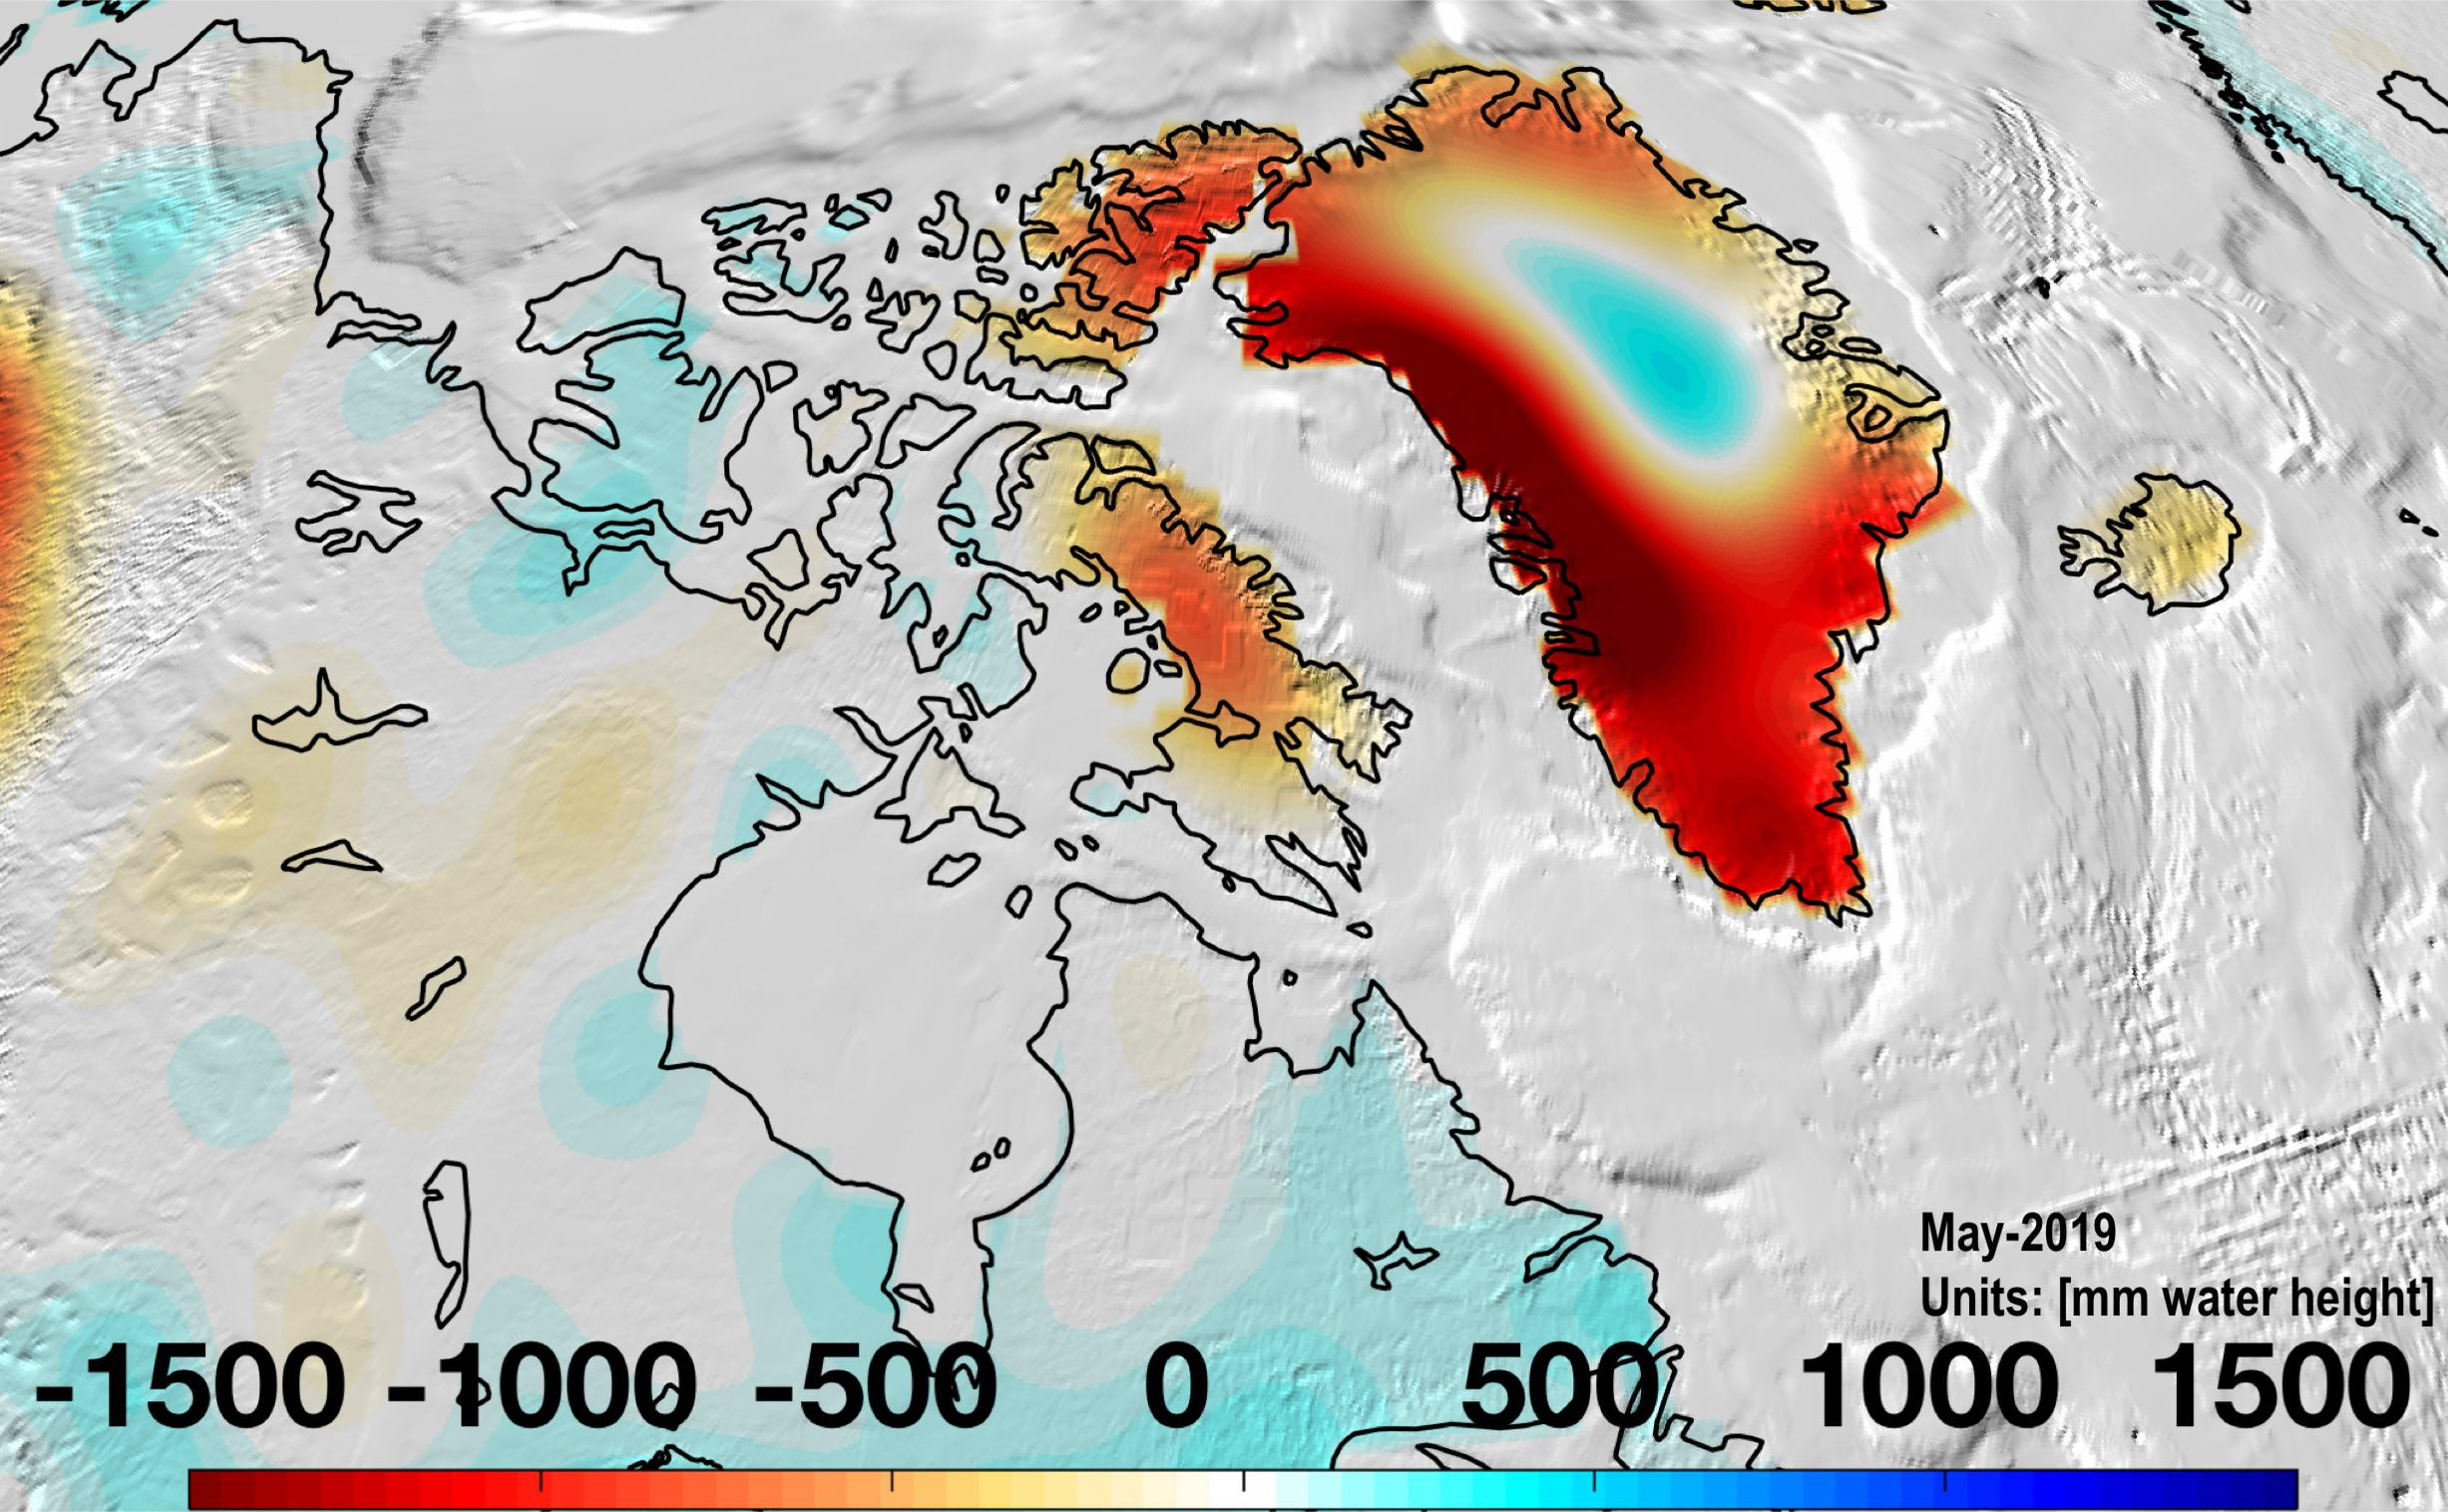 Almost all of Greenland continued to lose mass in May 2019 as the ice sheet continues to melt.